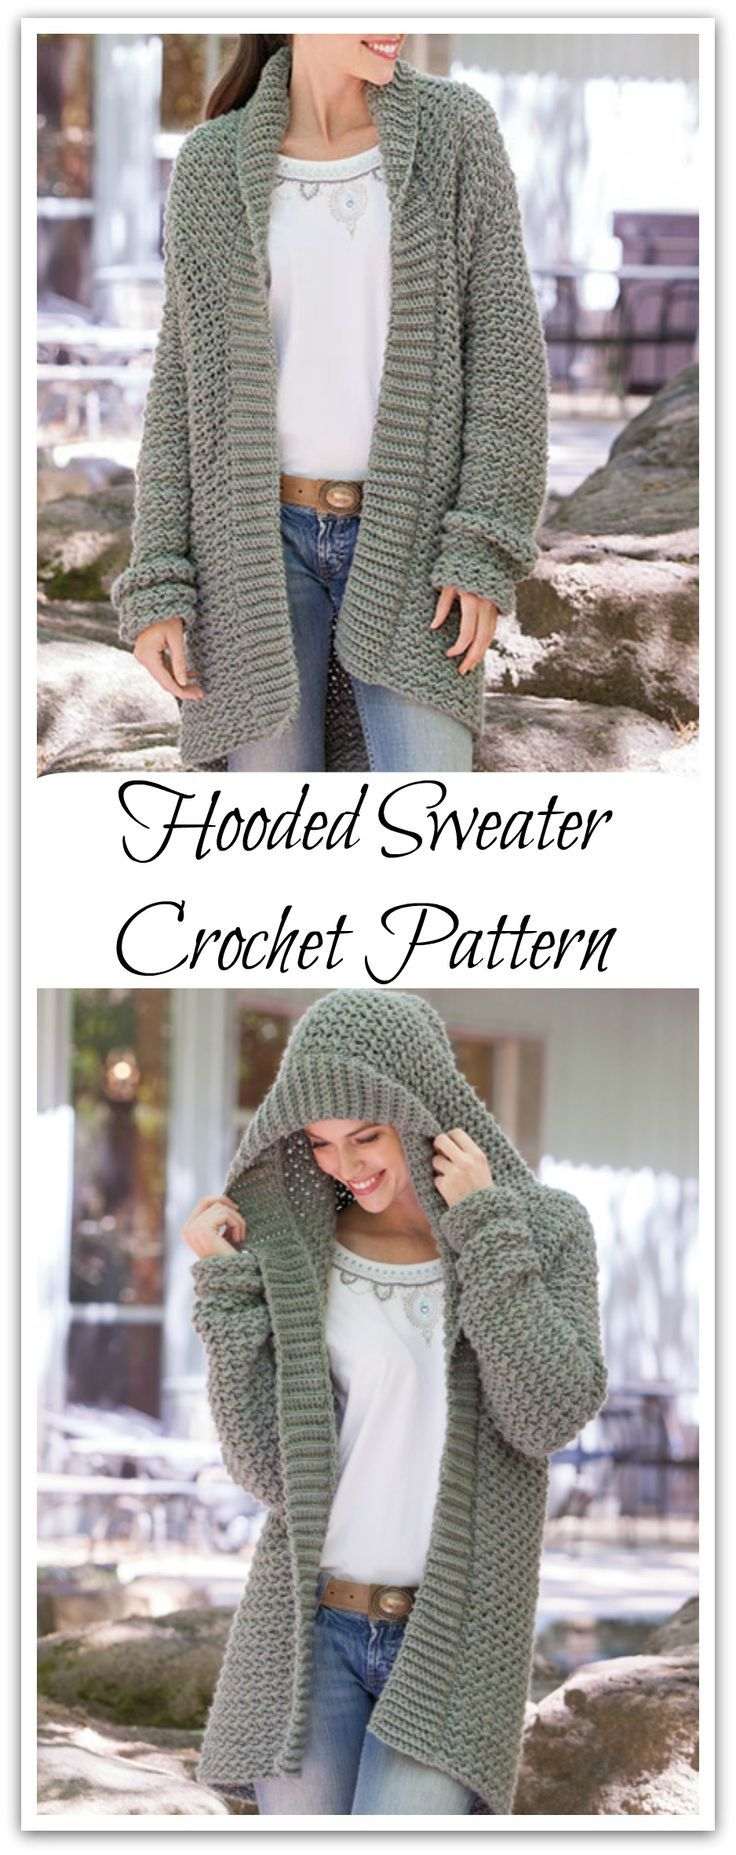 Snuggle in the textured fabric of this casual sweater with an ...